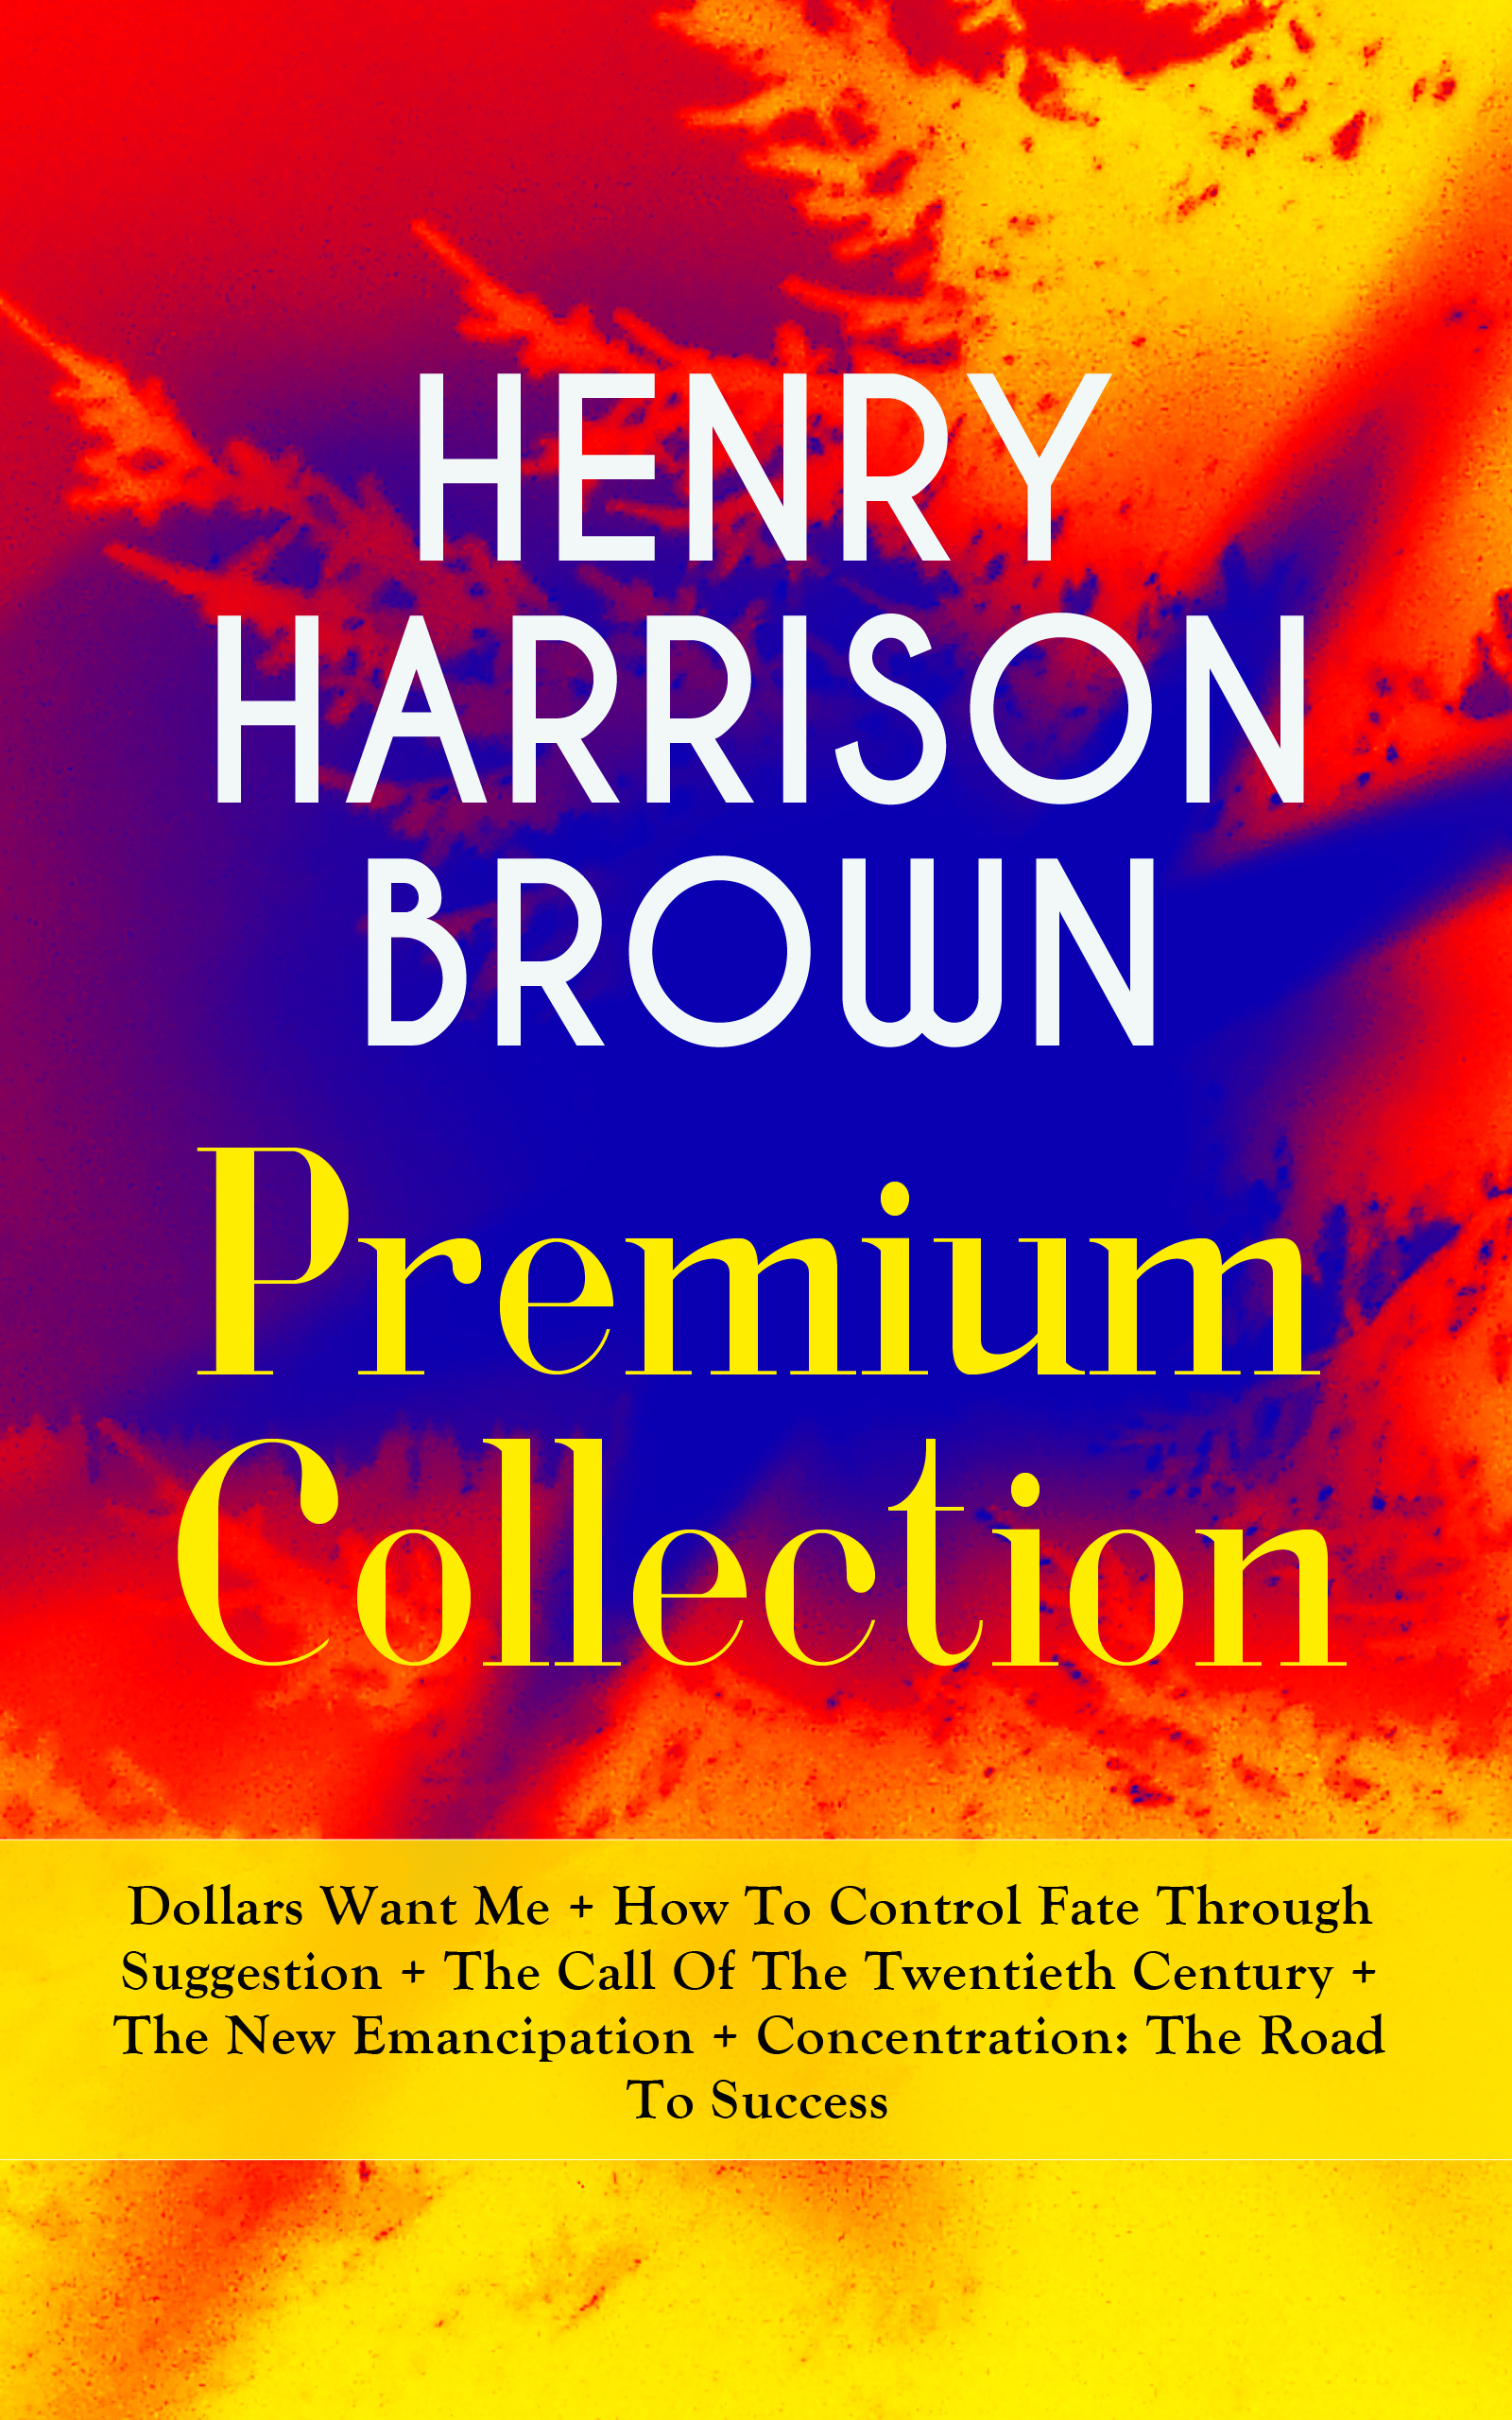 цена Henry Harrison Brown HENRY HARRISON BROWN Premium Collection: Dollars Want Me + How To Control Fate Through Suggestion + The Call Of The Twentieth Century + The New Emancipation + Concentration: The Road To Success онлайн в 2017 году